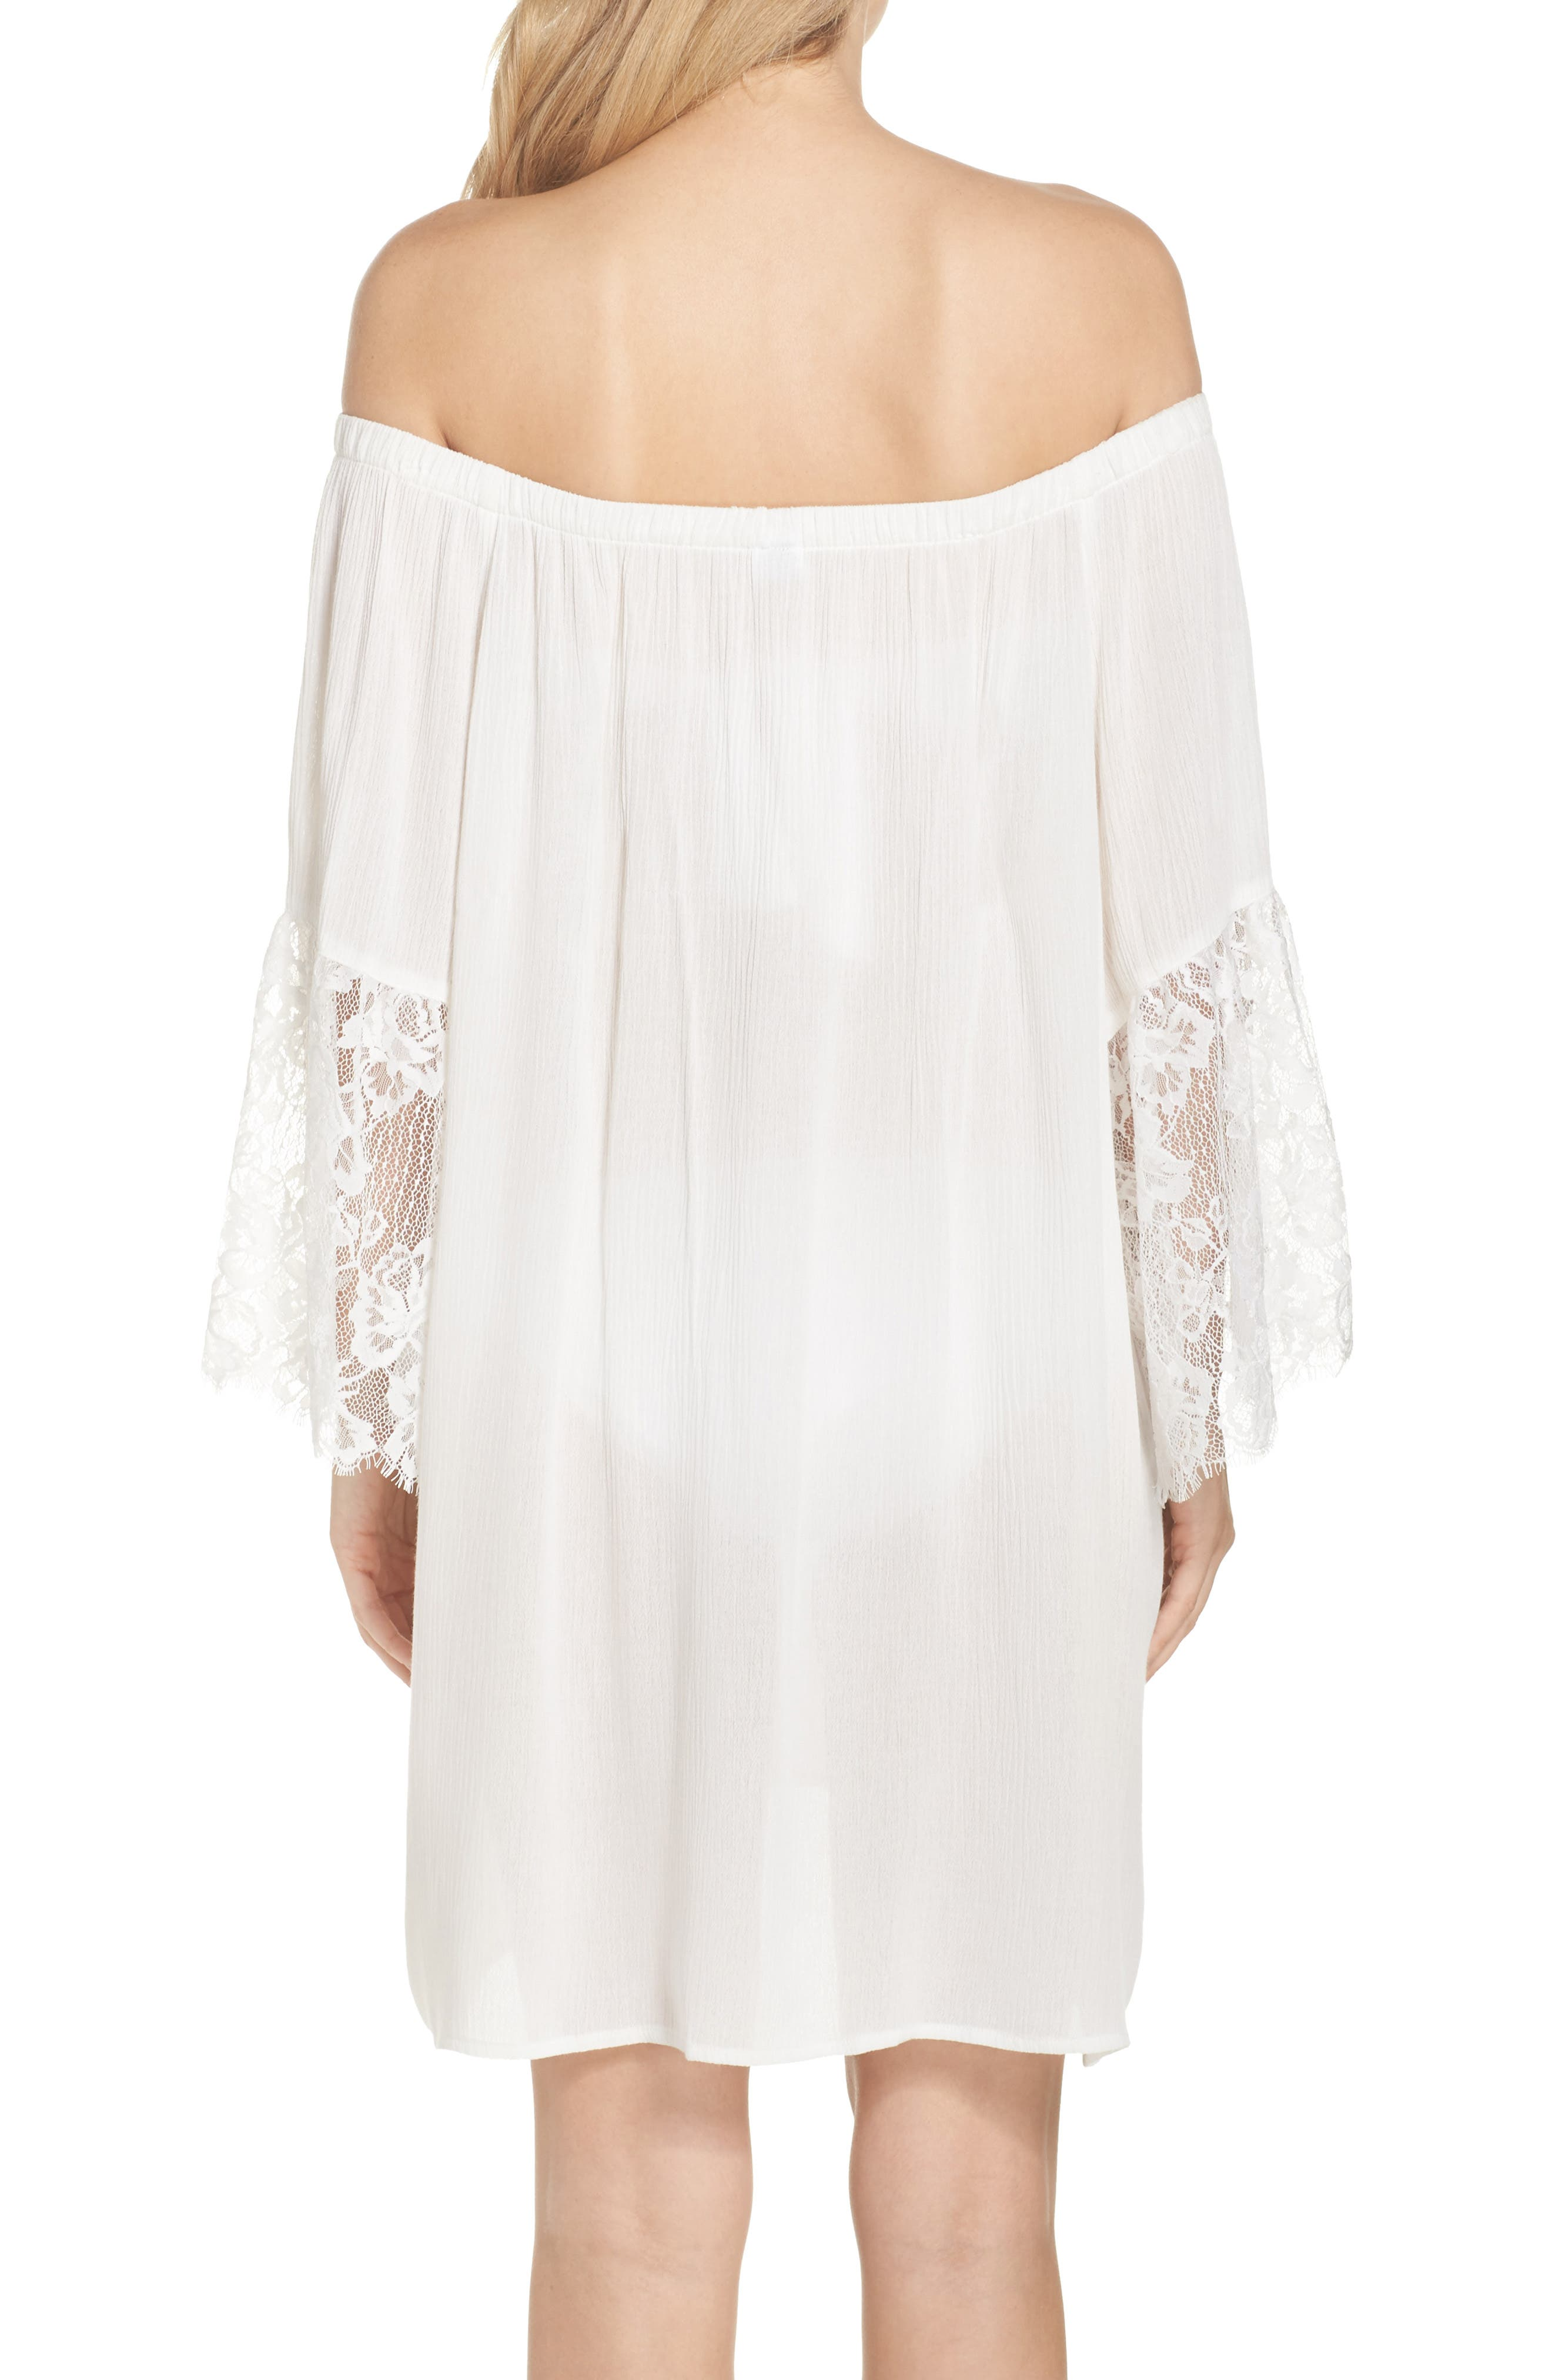 Off the Shoulder Cover-Up Dress,                             Alternate thumbnail 3, color,                             Ivory Egret